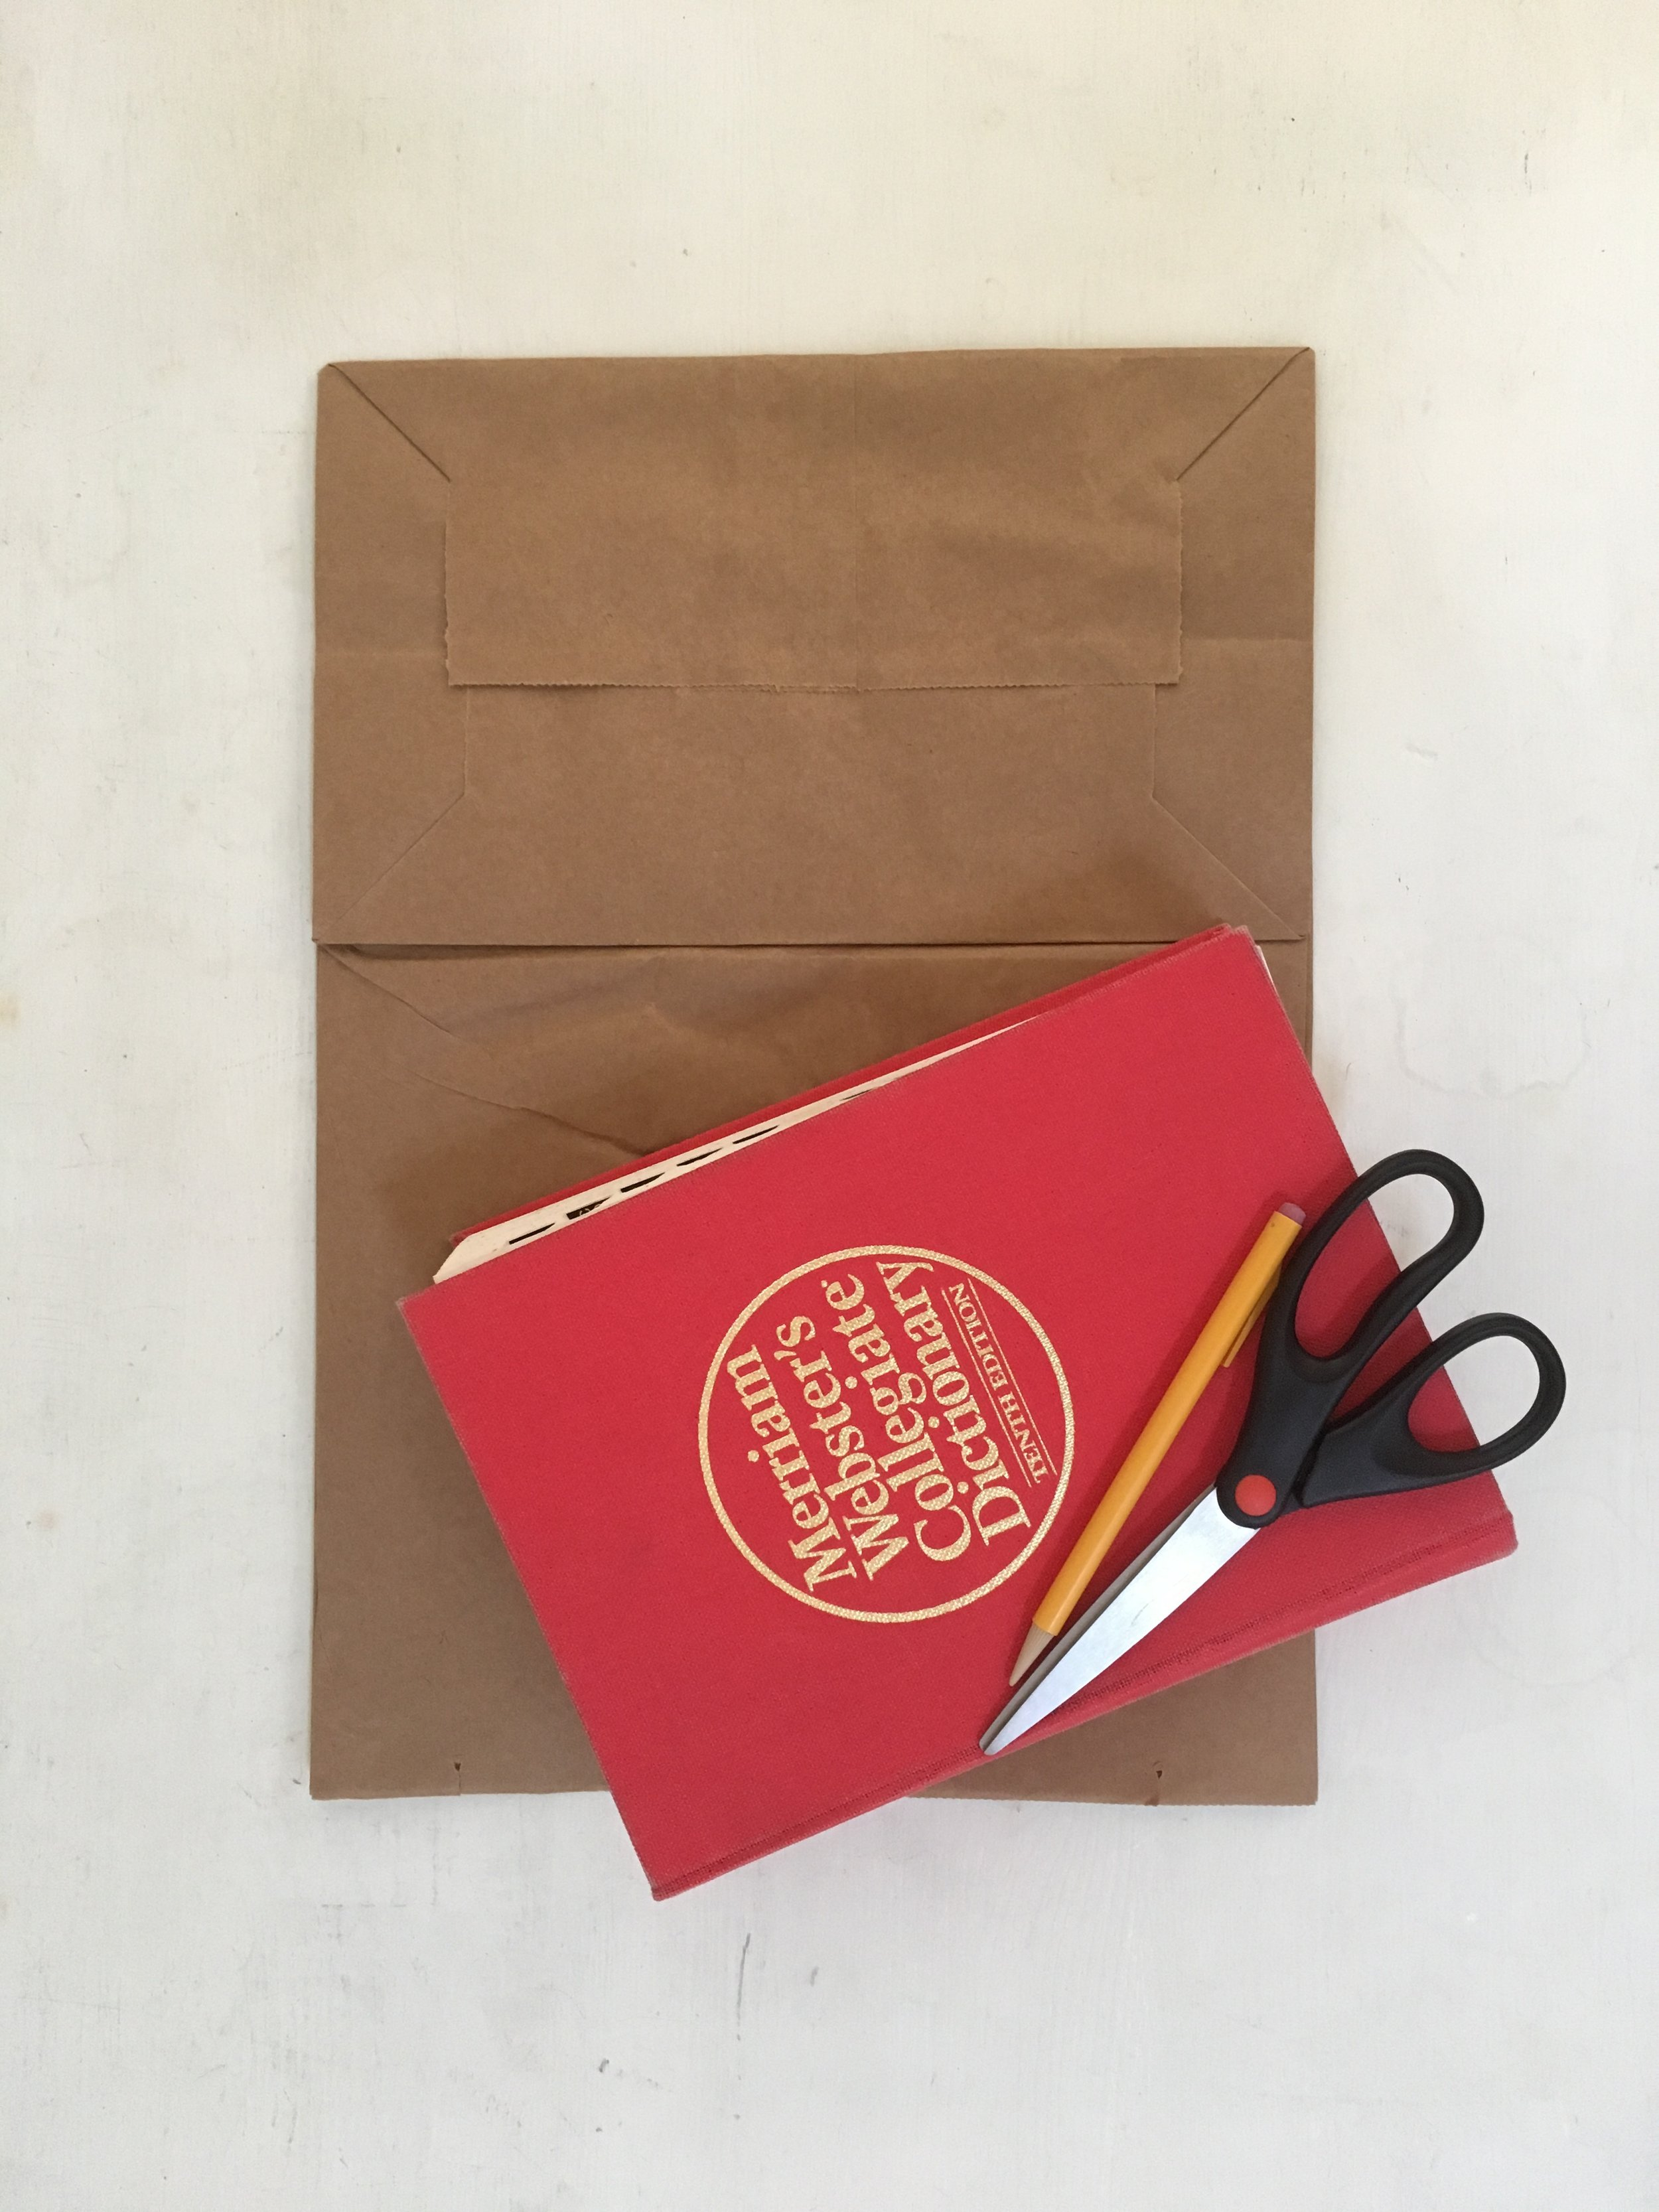 How To Make A Book Cover From A Paper Bag ~ Paper bag book staff activity ready to go for activity leaders